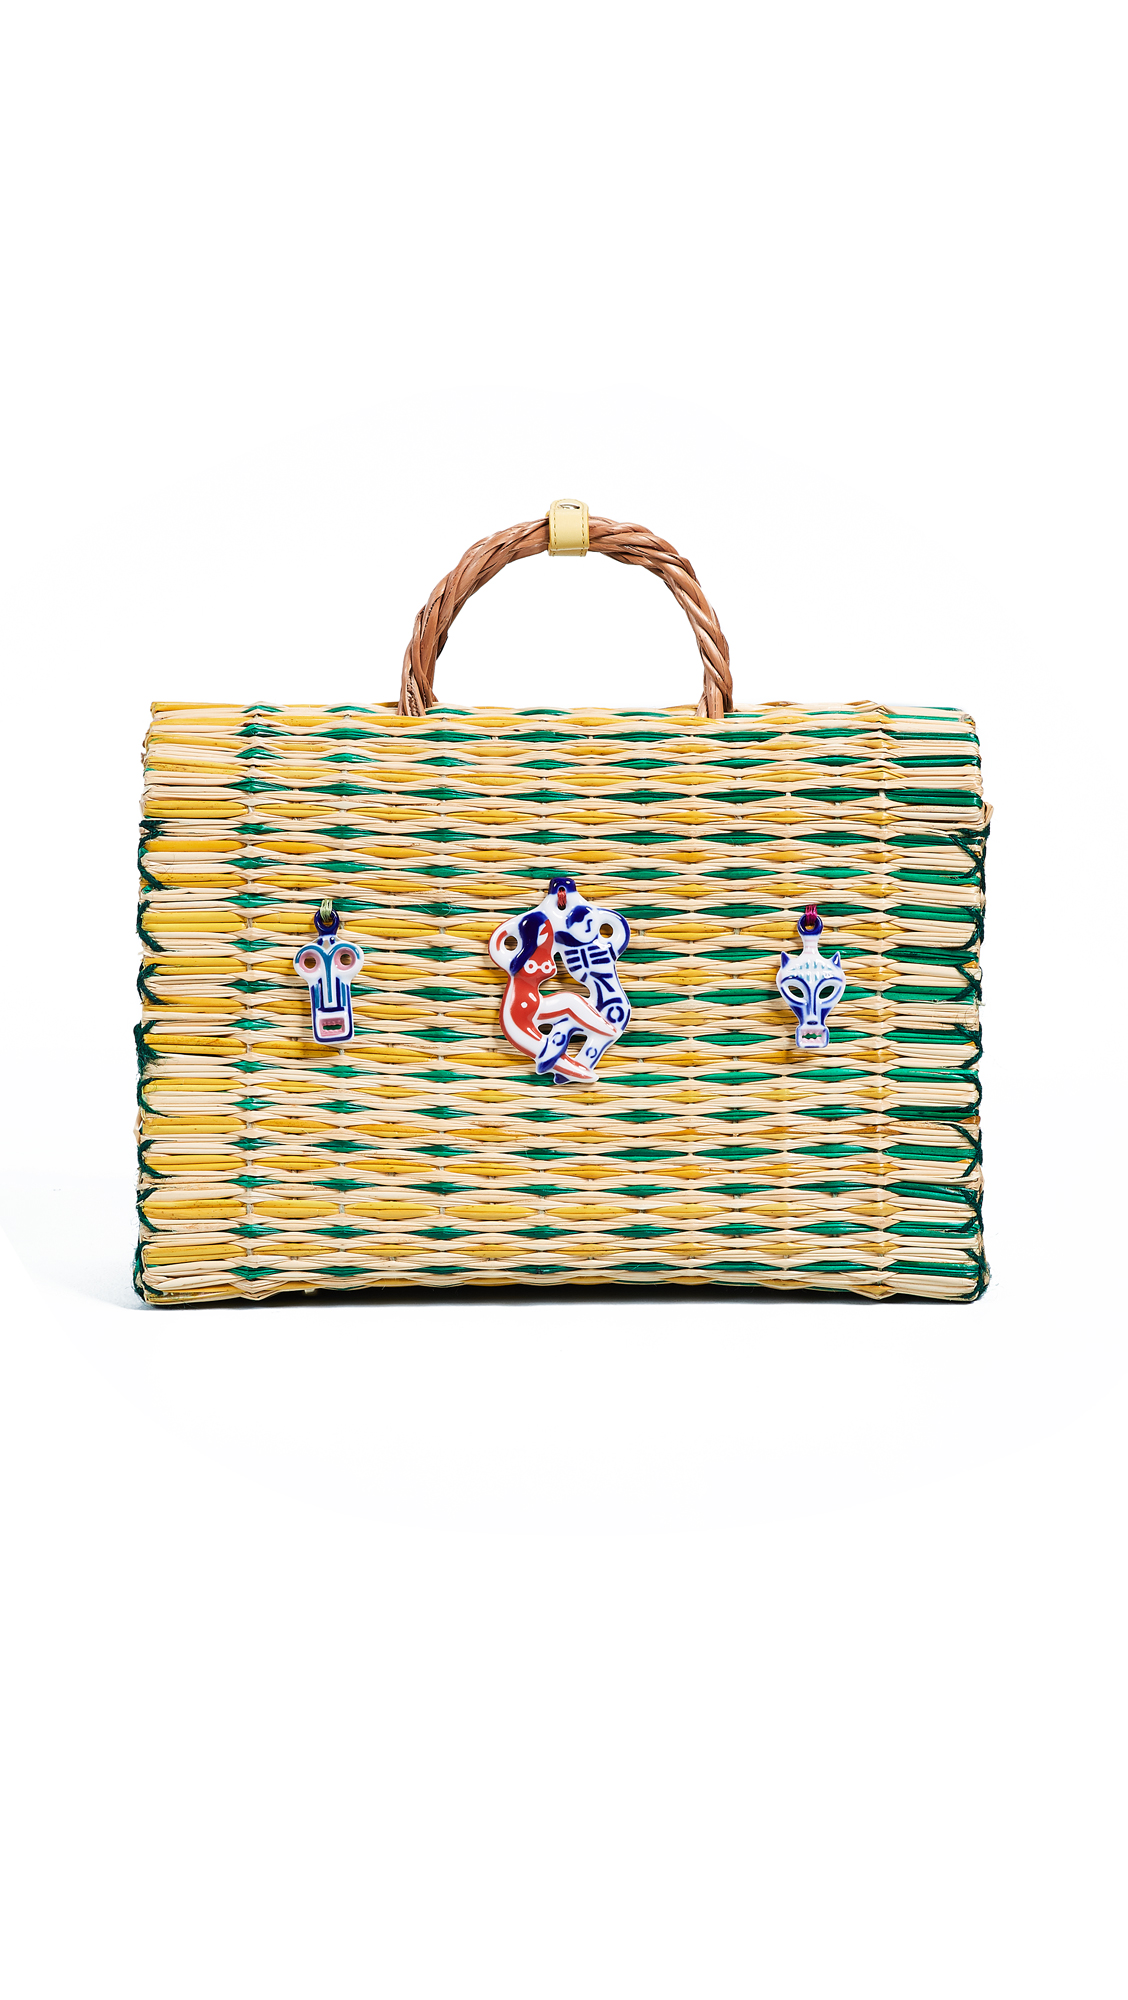 BRAZIL LARGE TOTE BAG from Shopbop